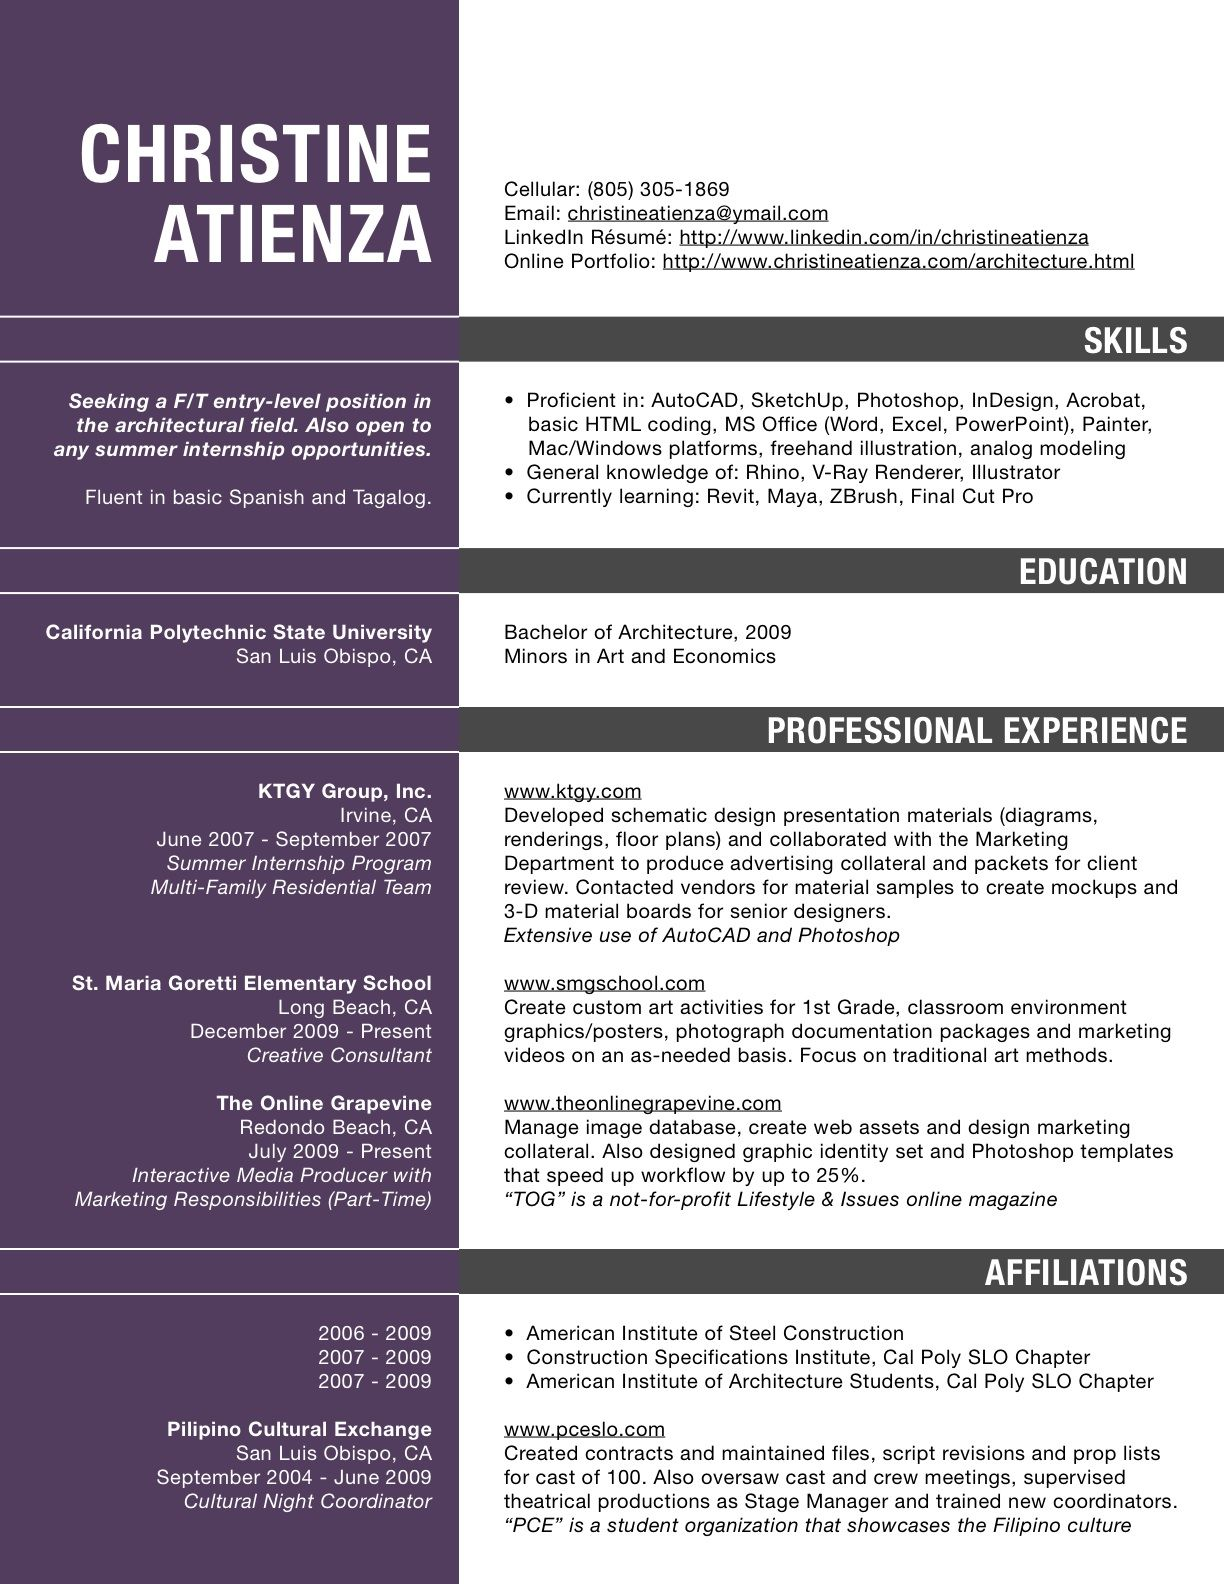 Undregraduate Architect Resume Yahoo Search Results Yahoo Image